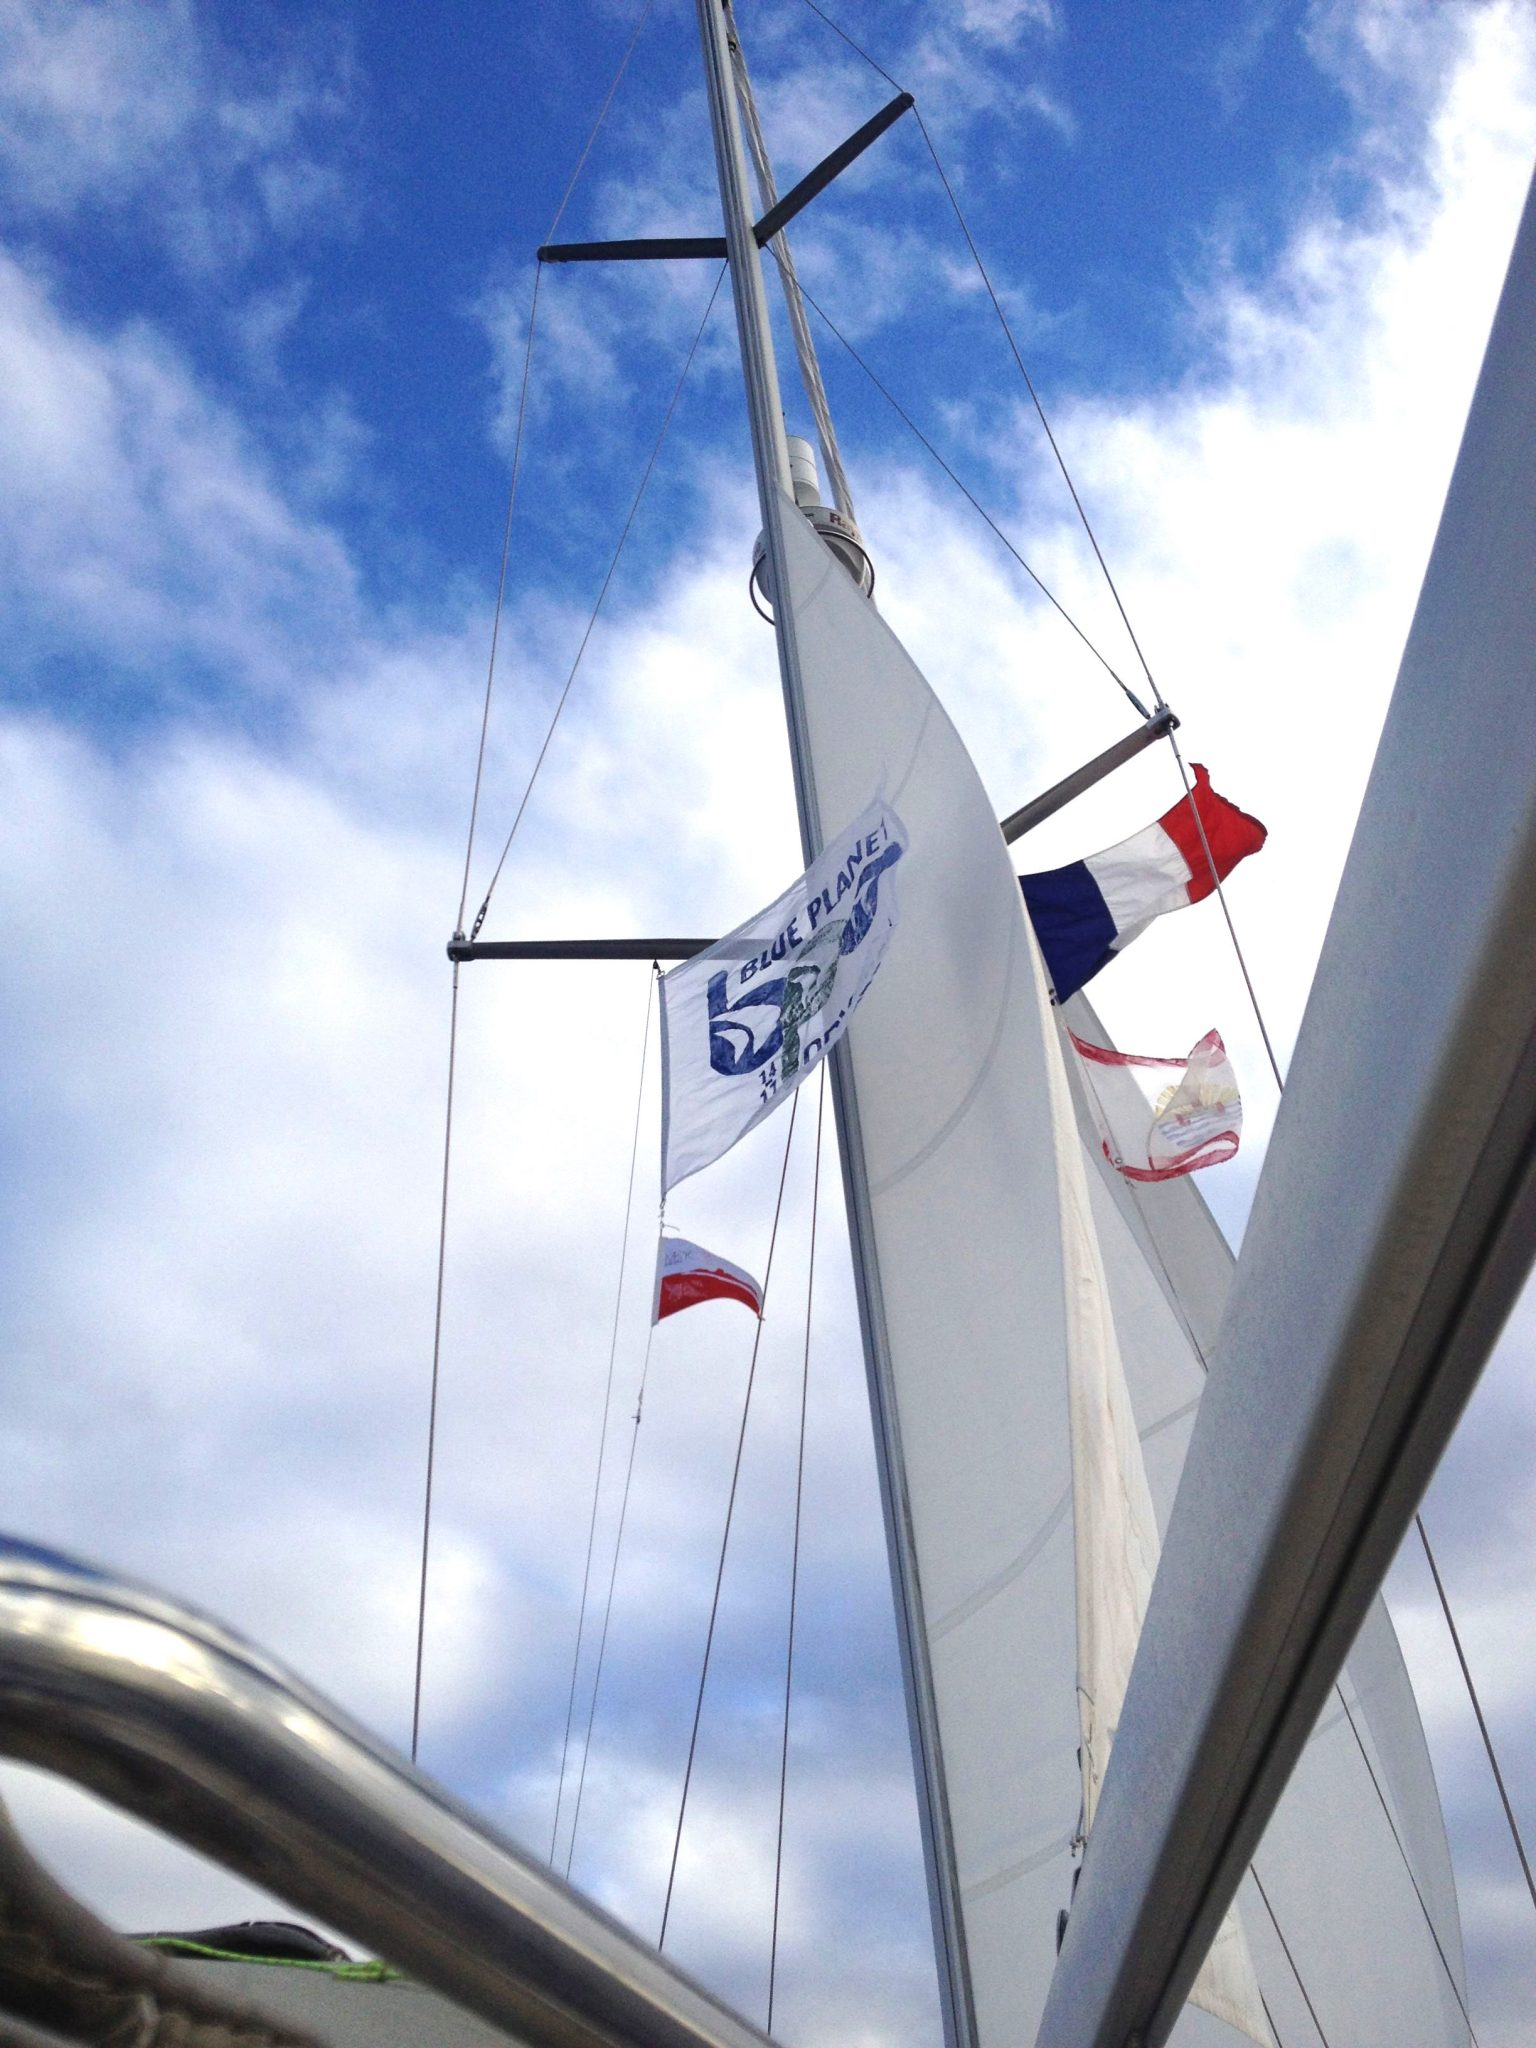 1. Joyful leaving Bora Bora flying the MaiKai Yacht Club Pennant, Blue Planet Odyssey flag, French Polynesia courtesy flag, and the French courtesy flag from her spreader halyards